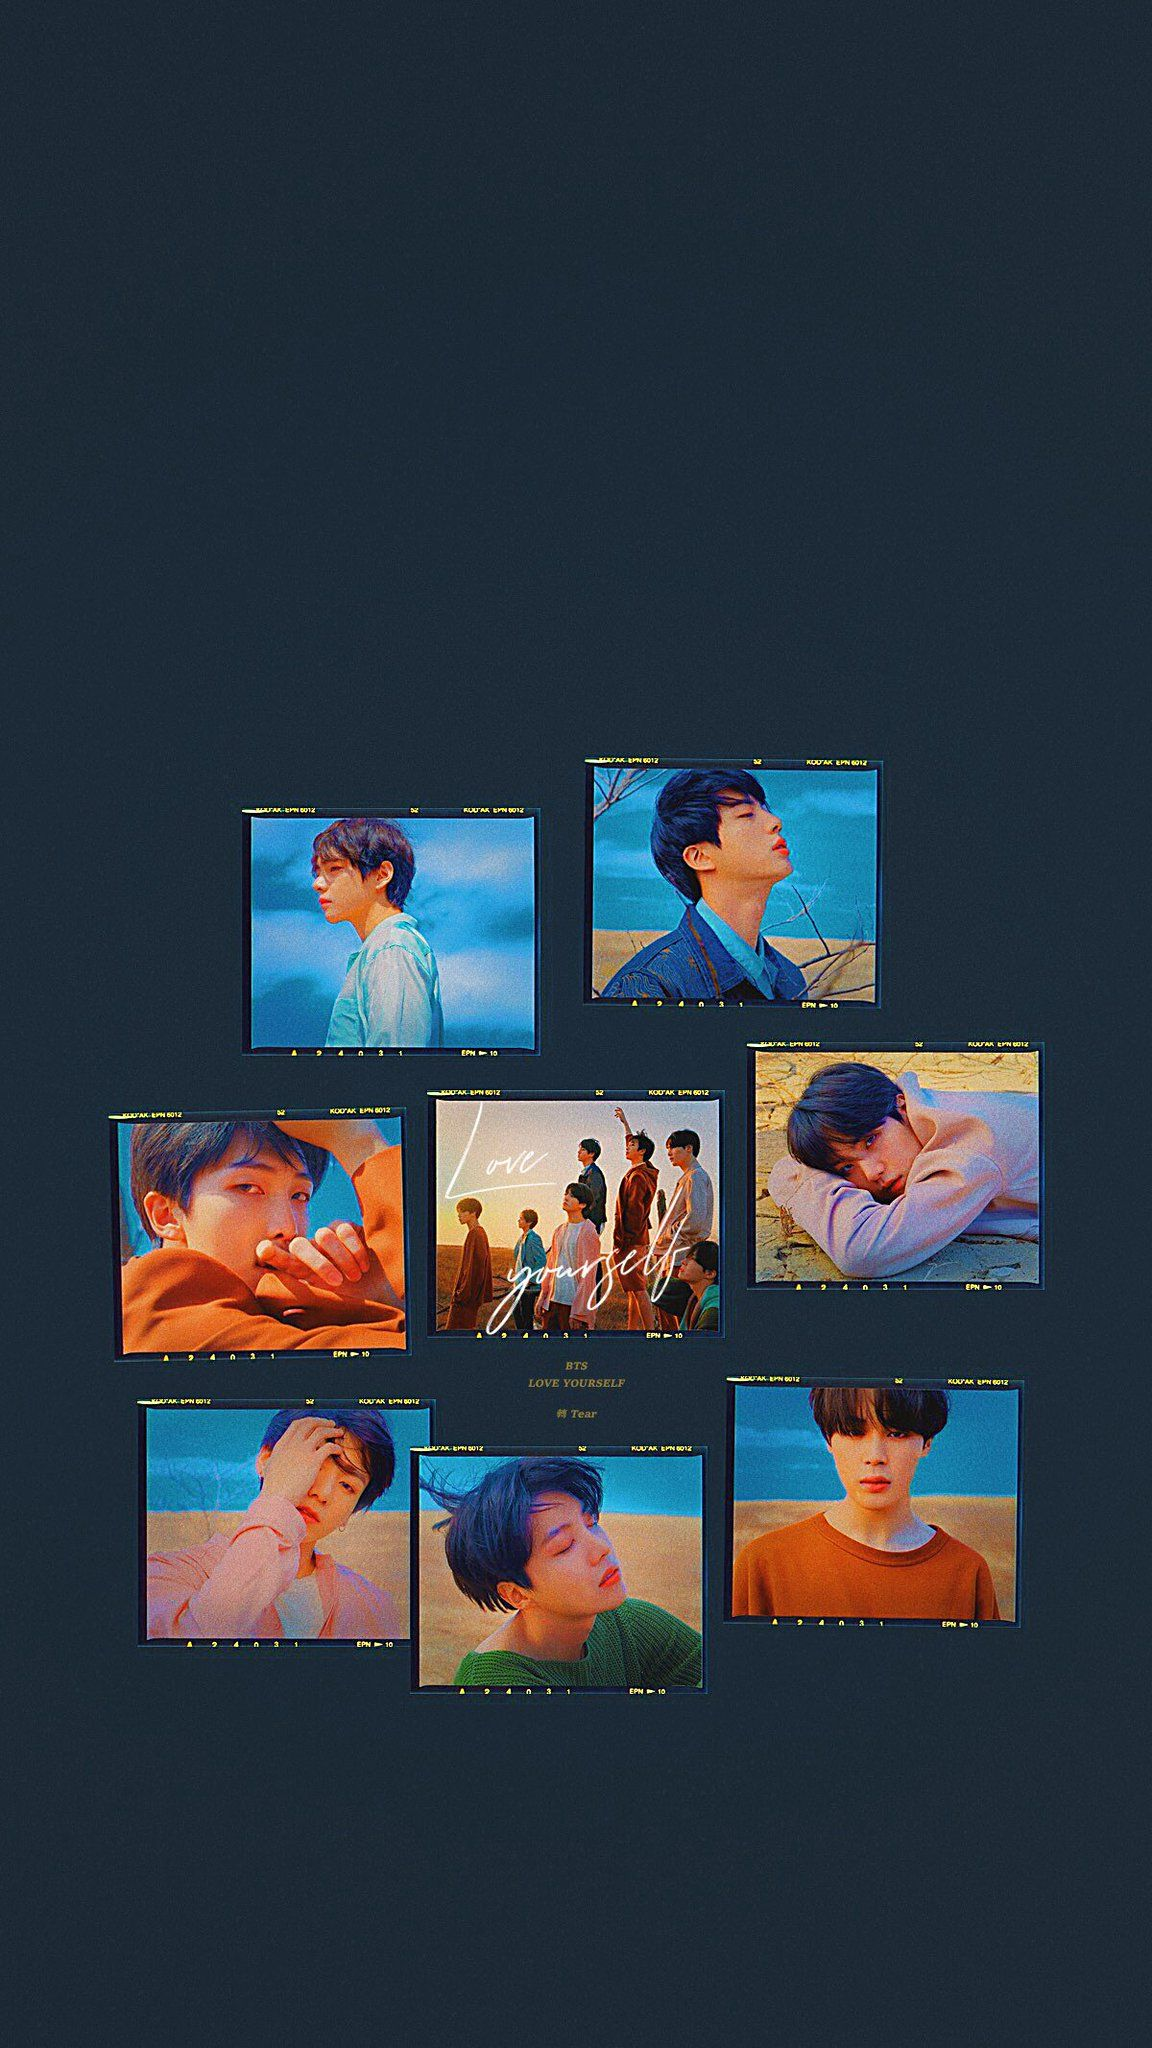 Twitter #btswallpaperaesthetic